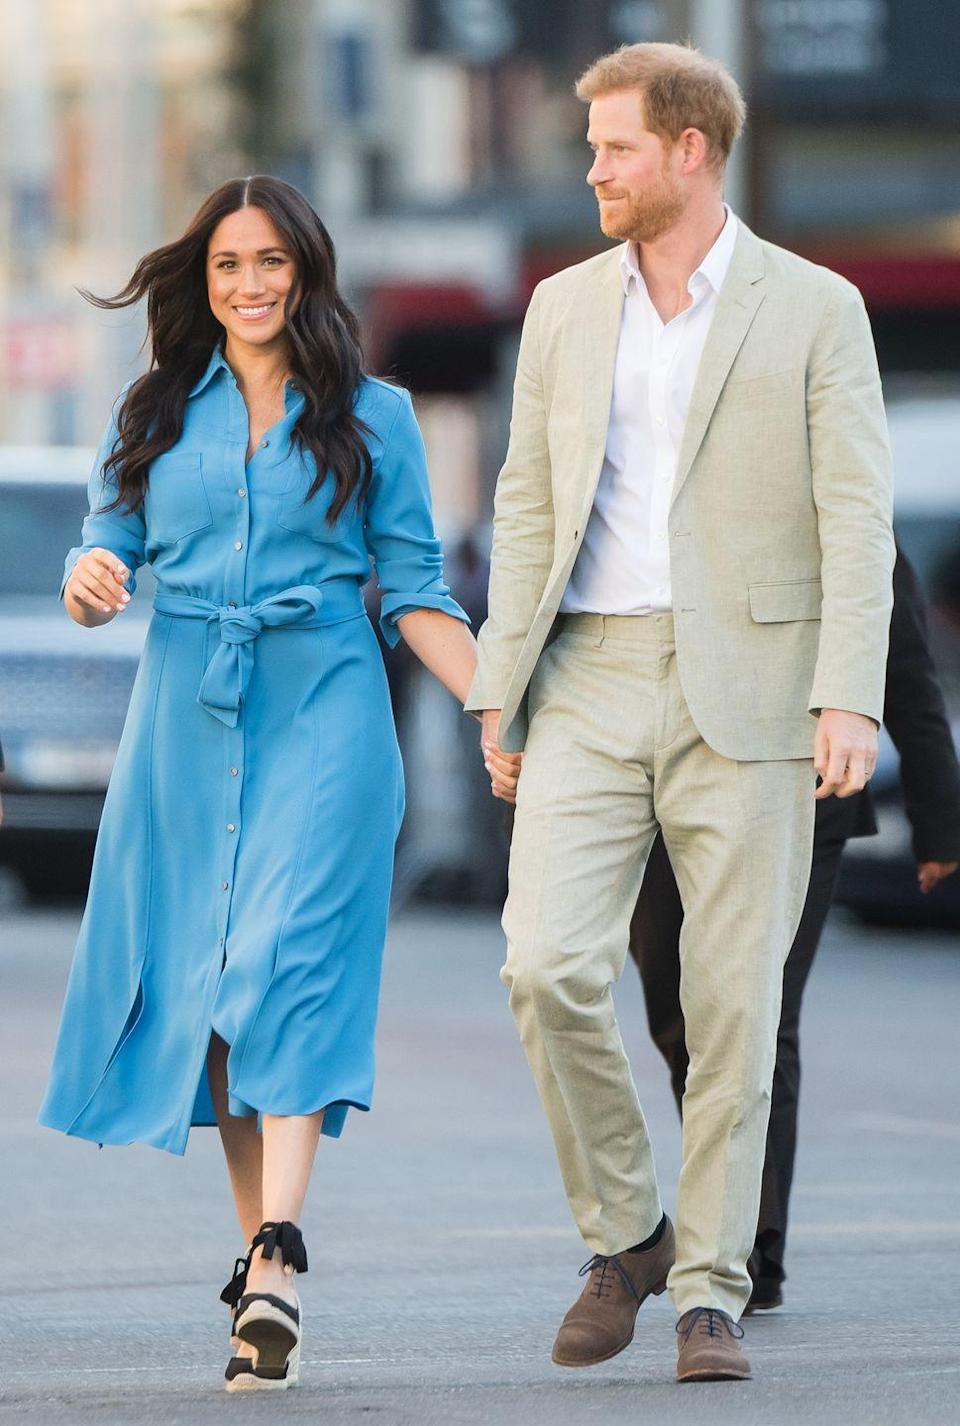 "<p>For her second engagement of the day, Meghan changed<a href=""https://www.townandcountrymag.com/style/fashion-trends/a29190740/meghan-markle-blue-veronica-beard-dress-cape-town-photos/"" rel=""nofollow noopener"" target=""_blank"" data-ylk=""slk:into a gorgeous blue Veronica Beard dress"" class=""link rapid-noclick-resp""> into a gorgeous blue Veronica Beard dress</a>, which the Duchess previously wore in Tonga last year. Meghan paired the striking outfit with the same black espadrilles she wore earlier in the day.</p>"